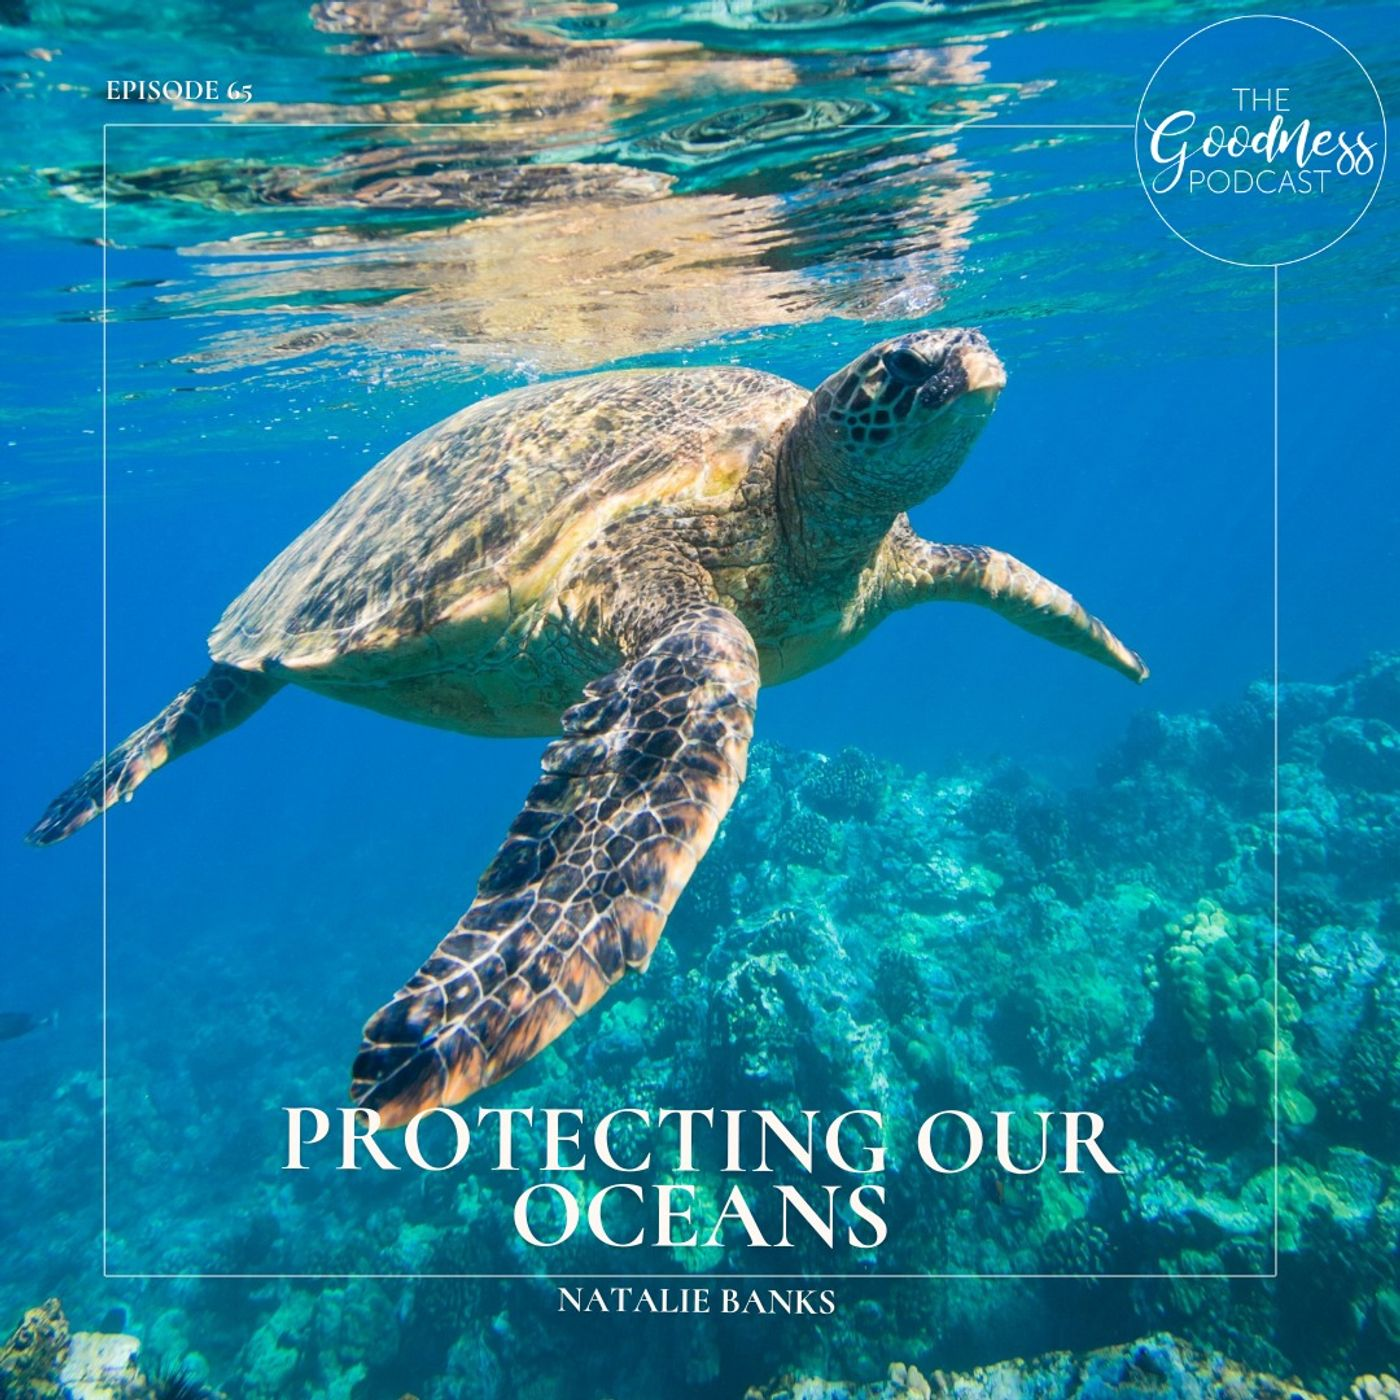 Natalie Banks: Protecting Our Oceans